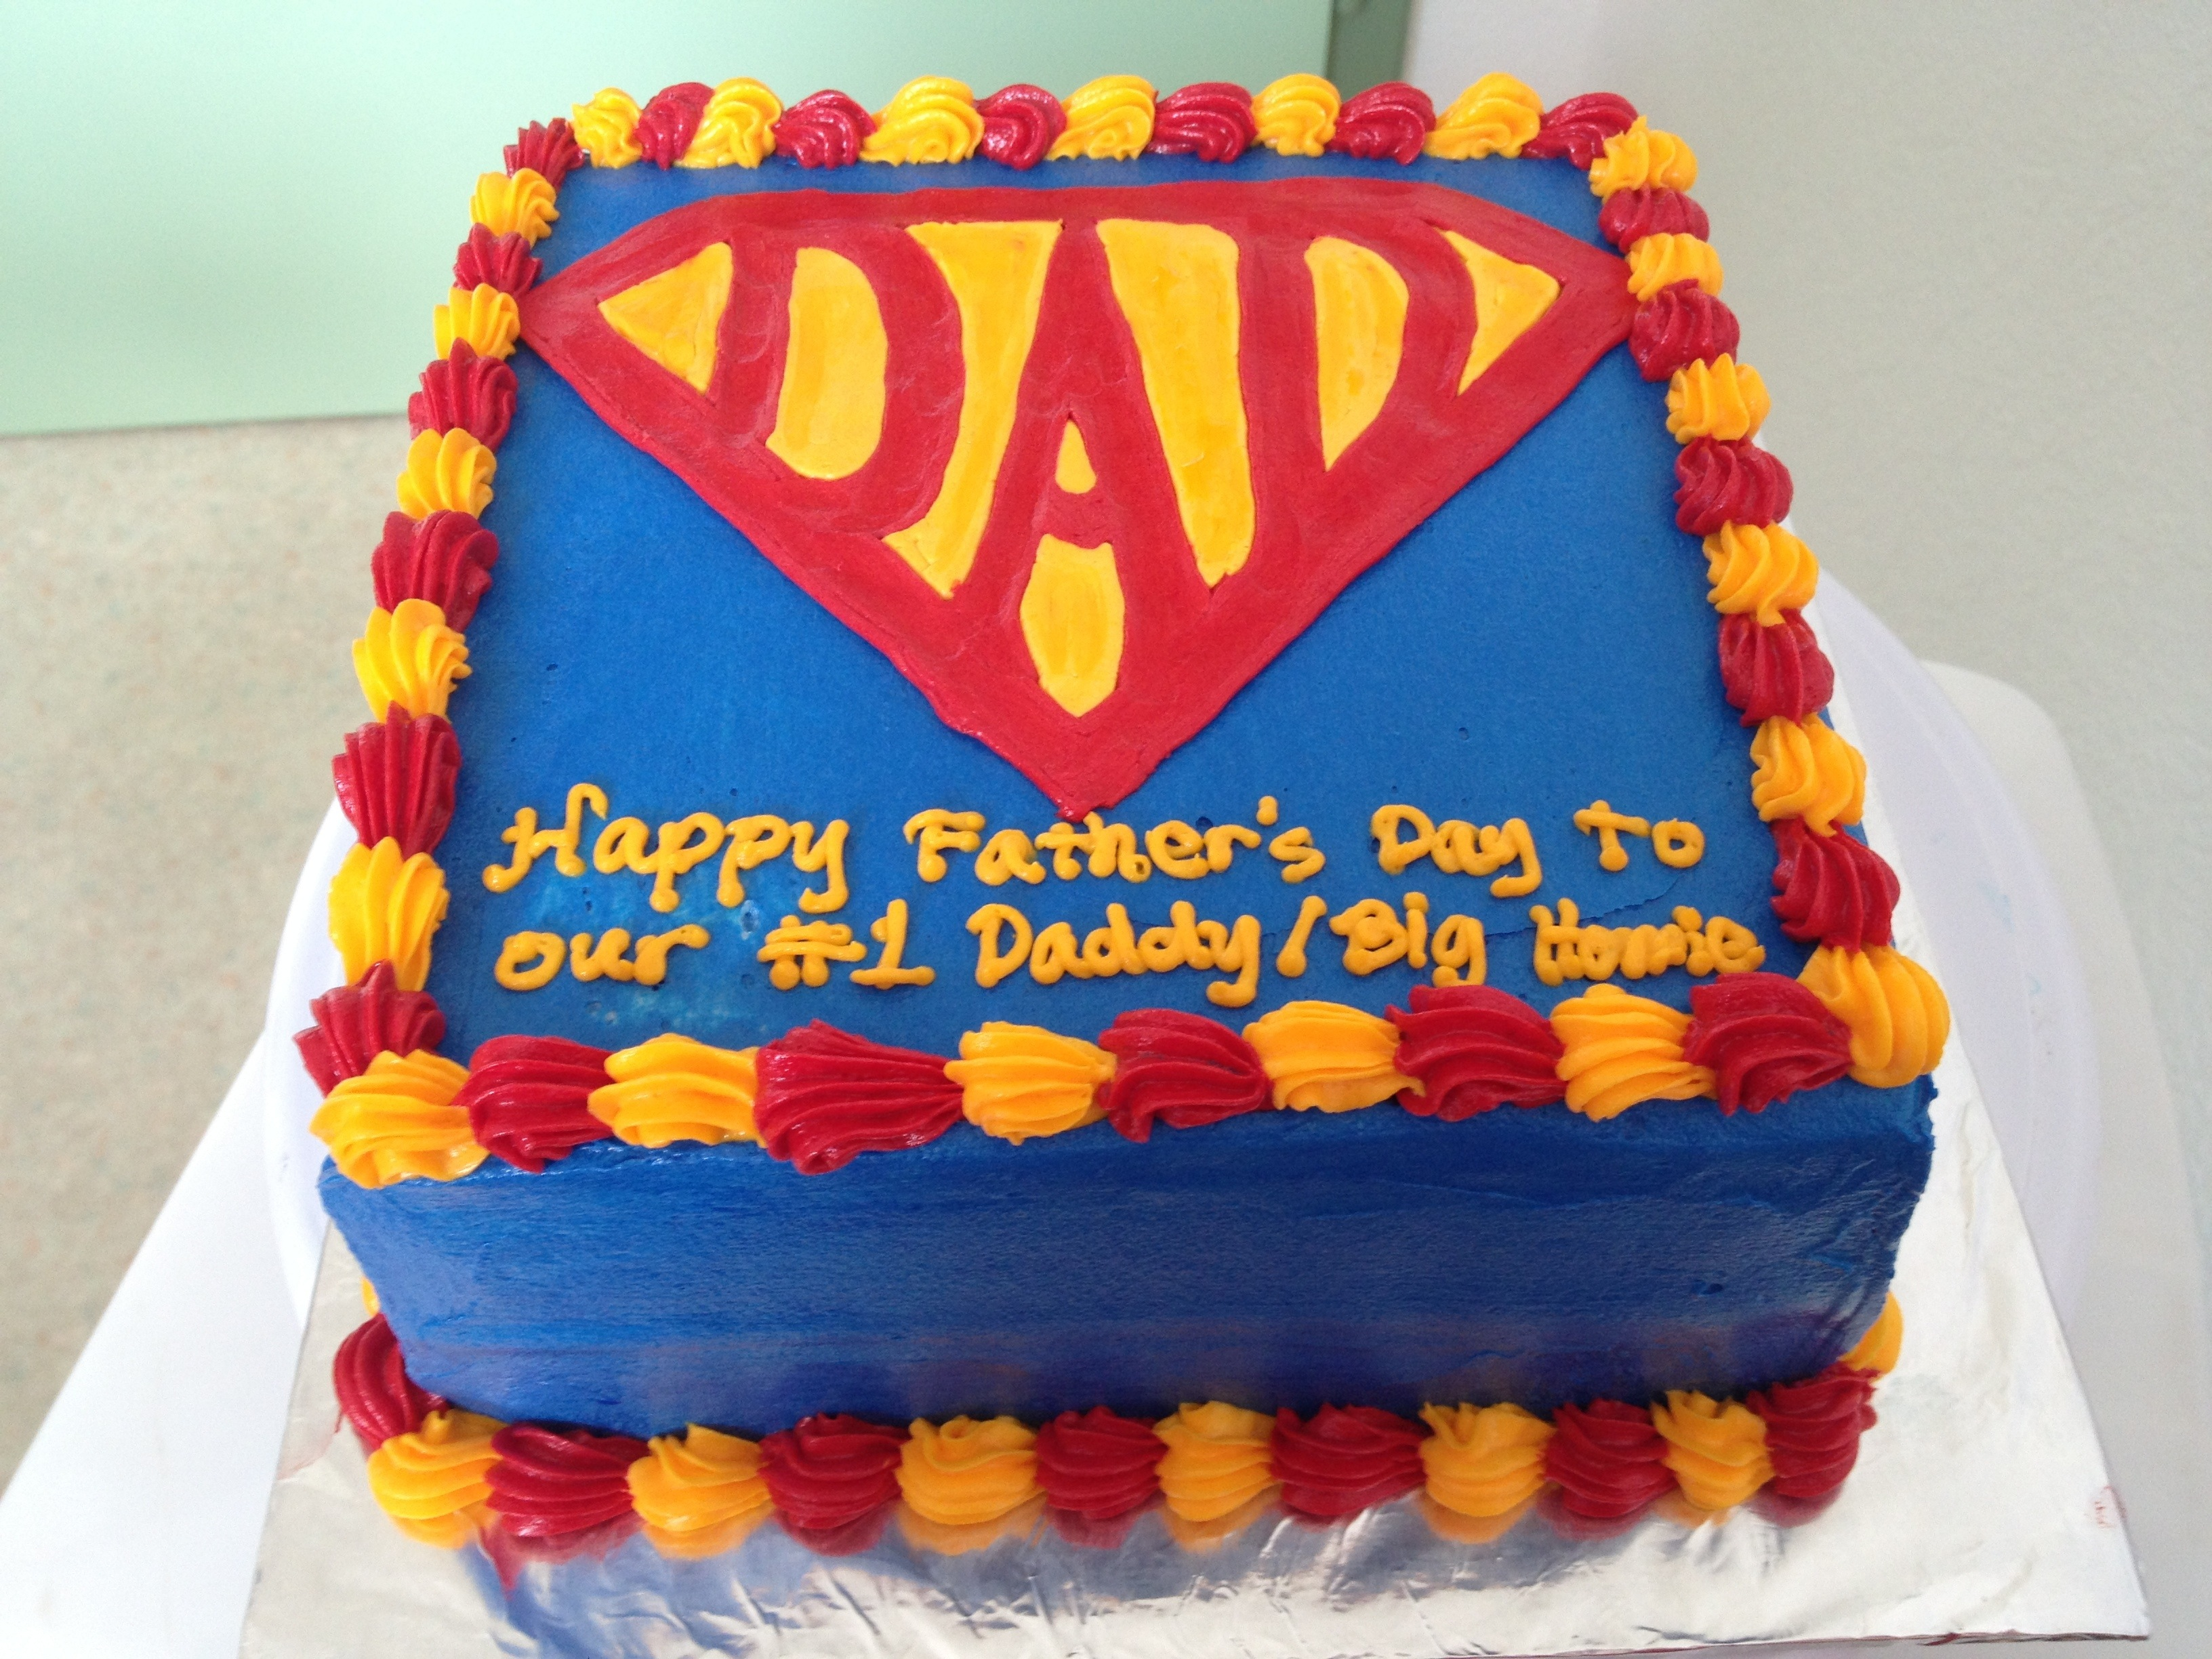 State Superdad Cake Day Twincupcakery Fars Day Cake Nz Fars Day Cake Melbourne nice food Fathers Day Cake